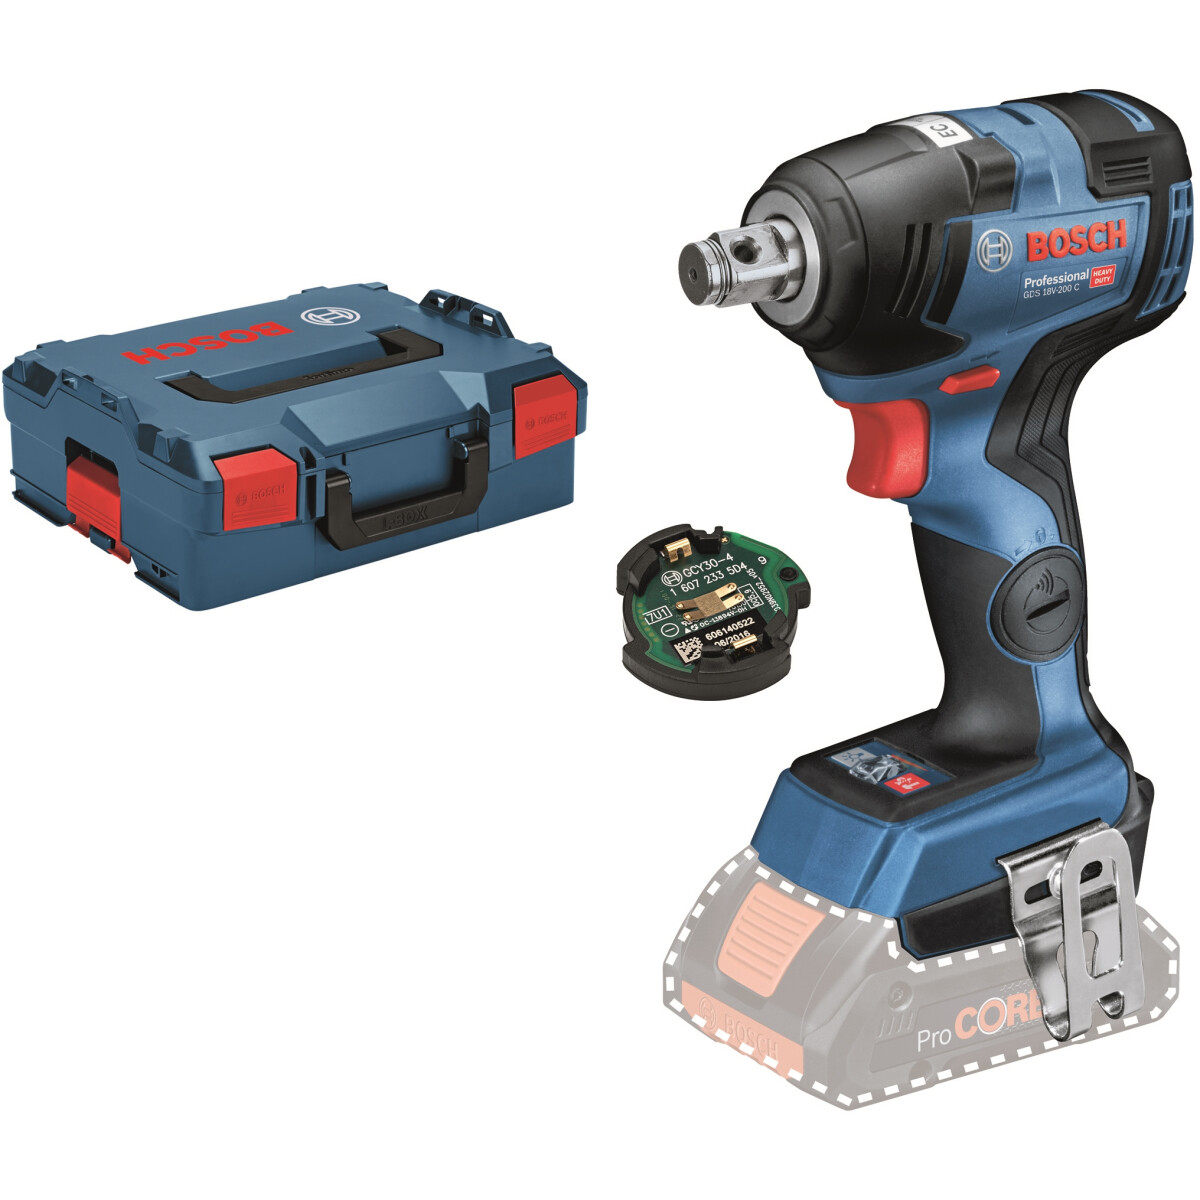 Bosch GDS 18 V-200 C 18v Brushless Impact Wrench (2x4.0 Procore) with Connectivity Module  in L-Boxx